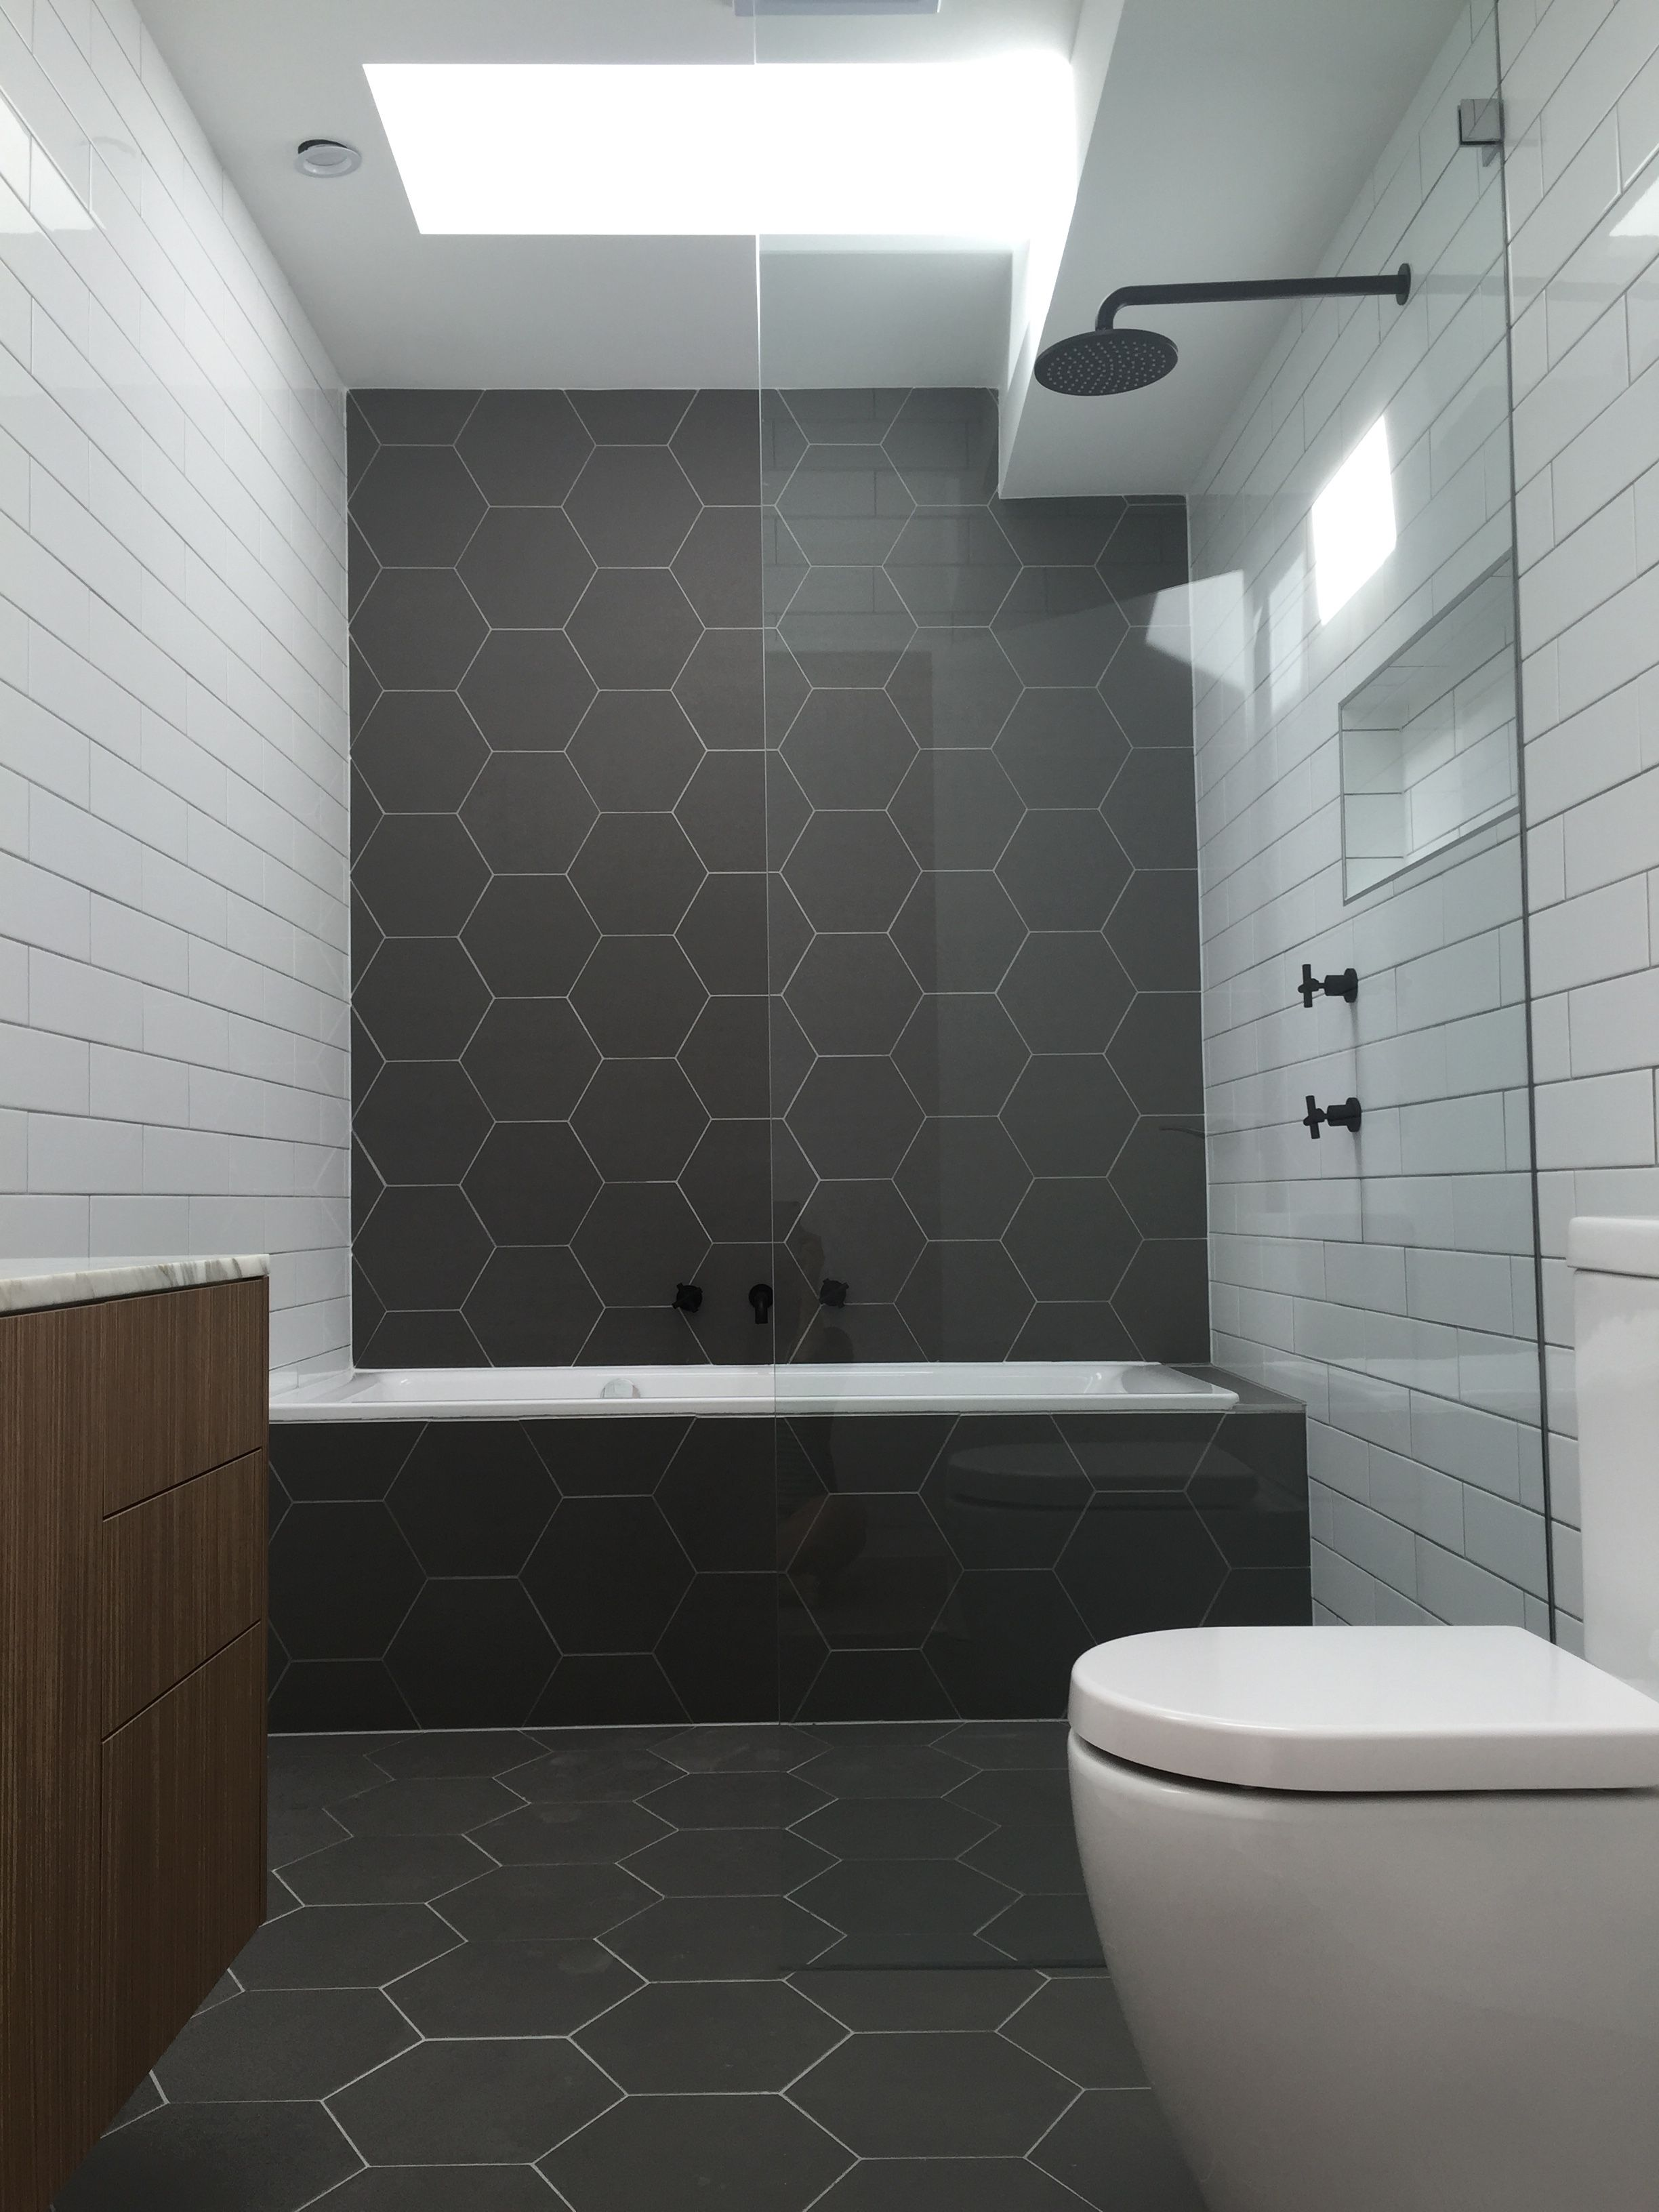 Hexagonal Tiles Monochrome Bathroom Matt Black Fittings Natural Zebrano Bathroom Cabinet Bathroom Interior Black Tile Bathrooms Monochrome Bathroom